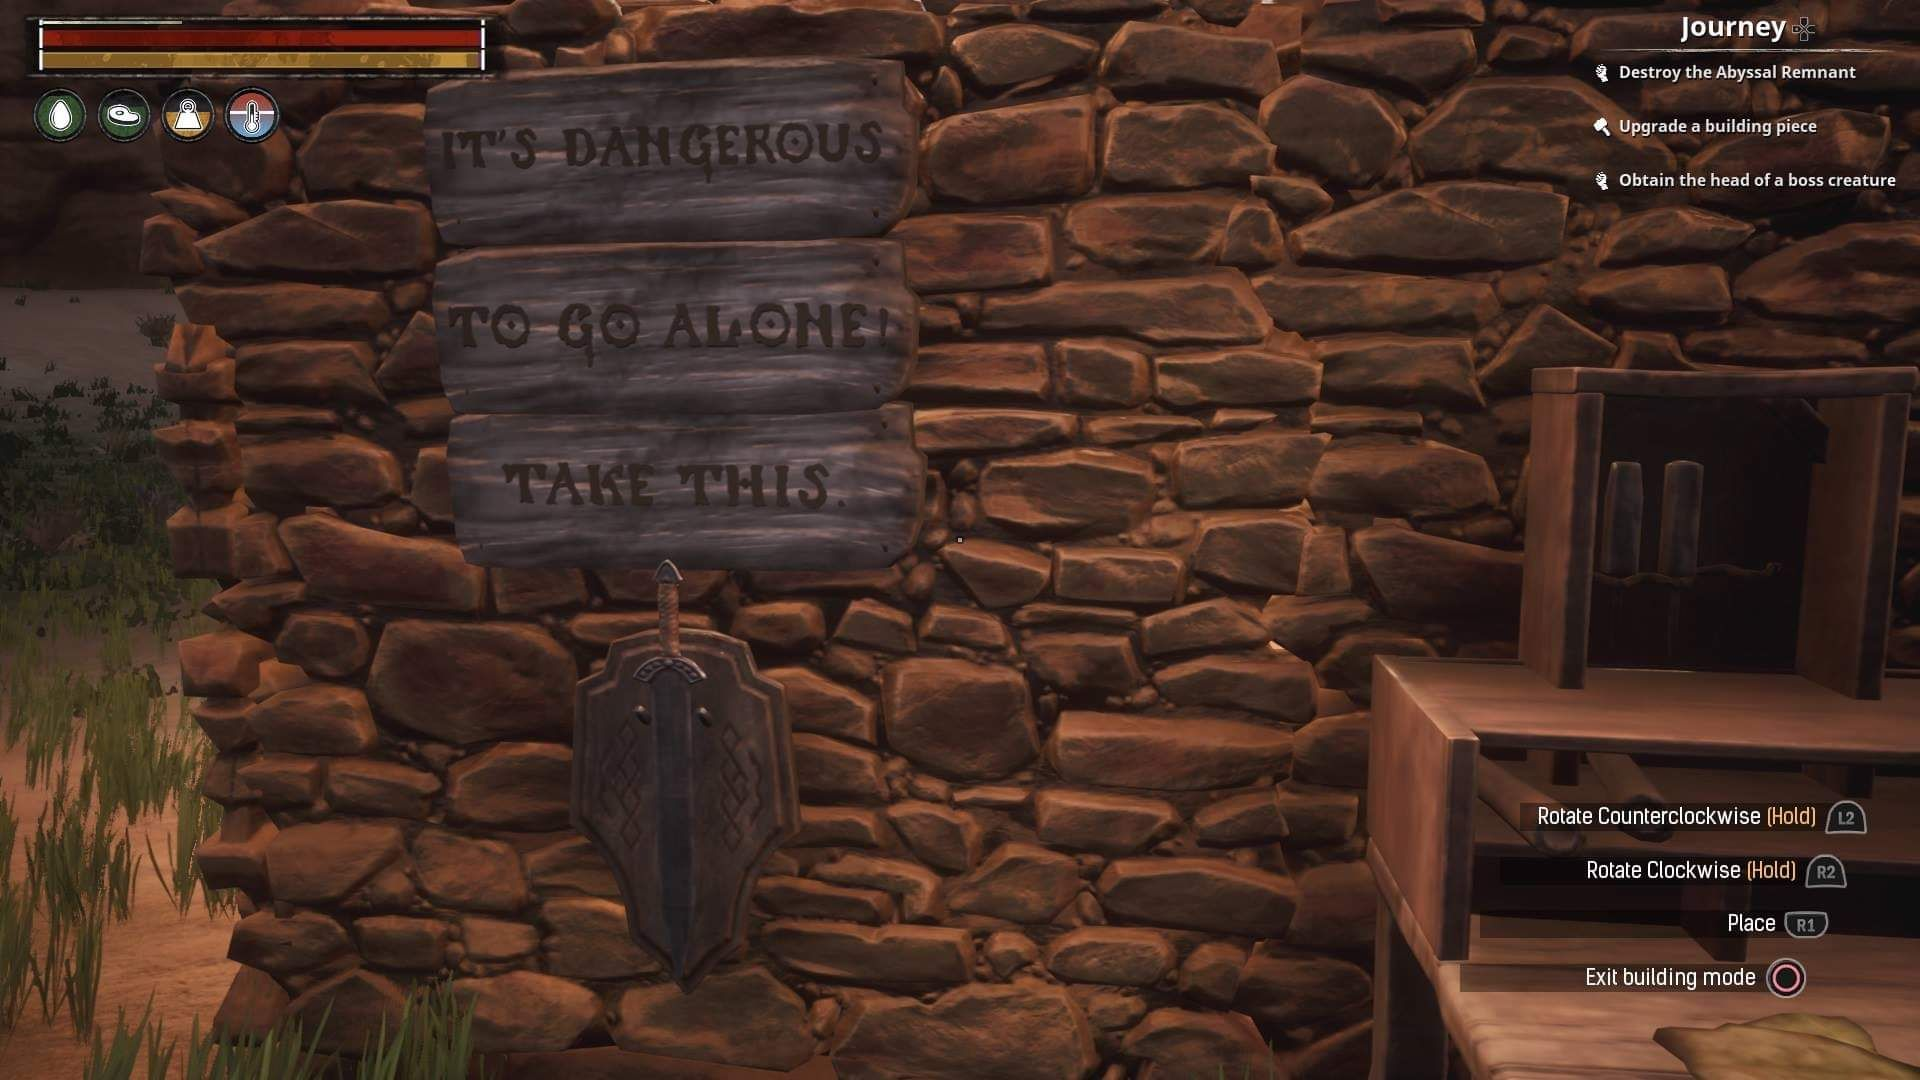 Once I Realized There Were Signs And Weapon Racks In The Game I Made The Obligatory Wall Decoration Conanexiles Conan Exiles Racks Conan The Barbarian